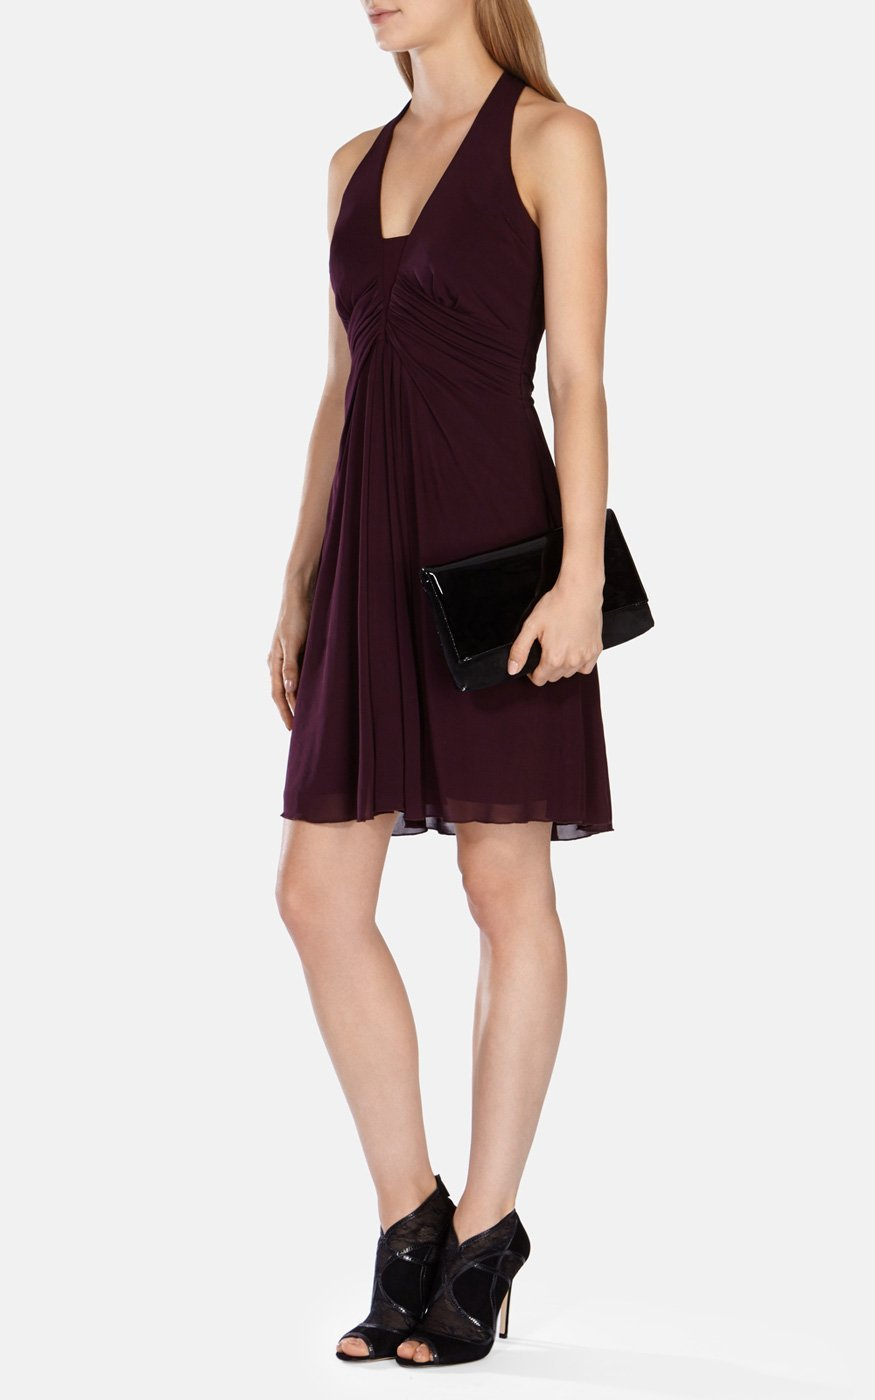 Karen Millen Draped Jersey Dress $299